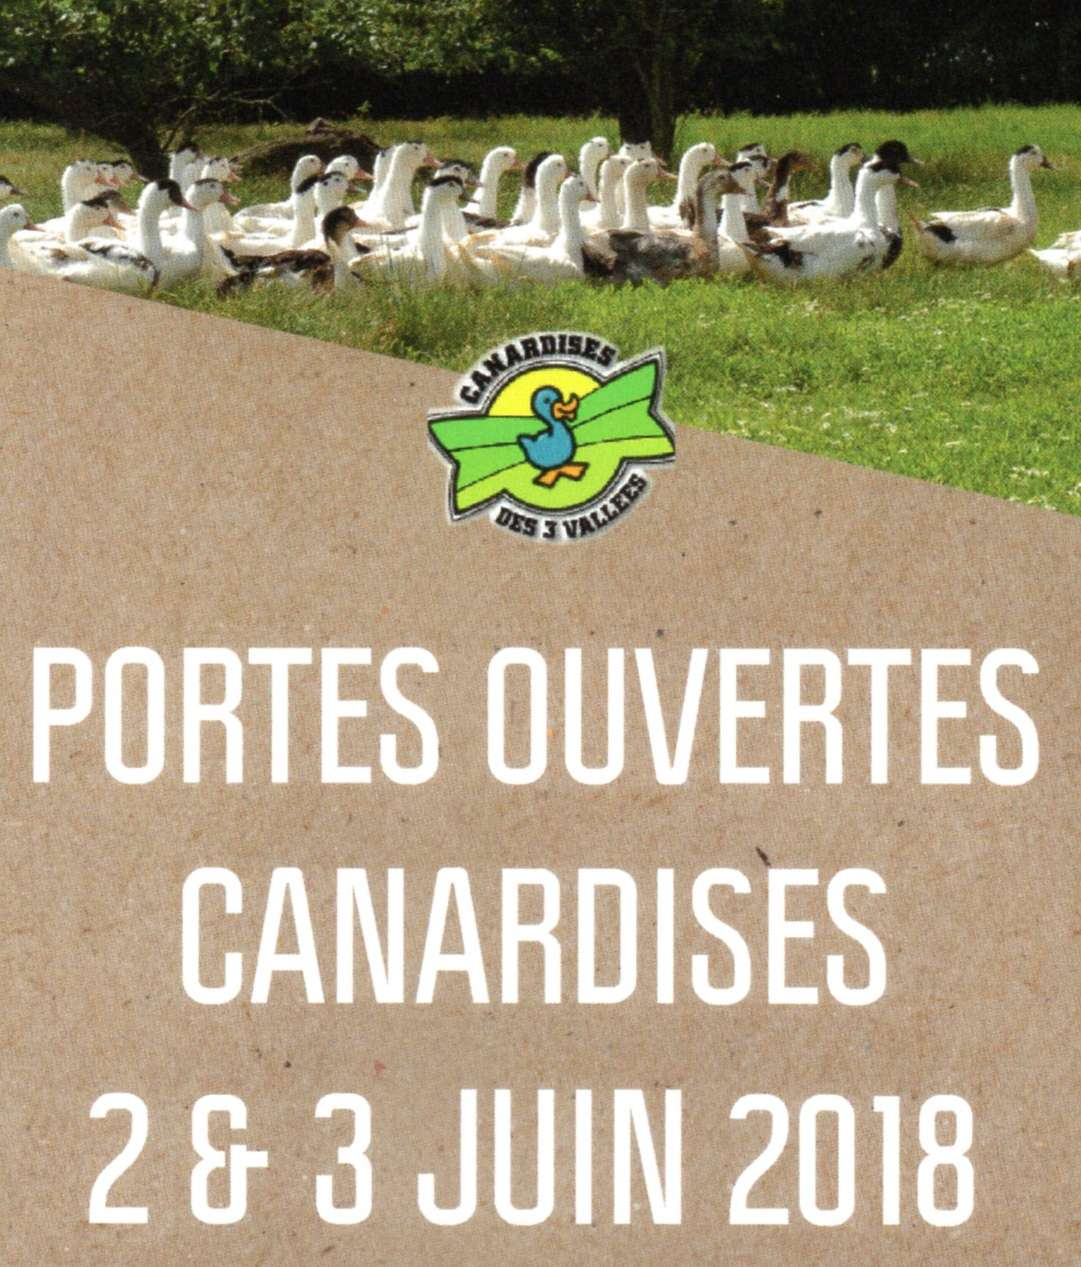 Portes ouvertes Canardises 2 et 3 juin 2018